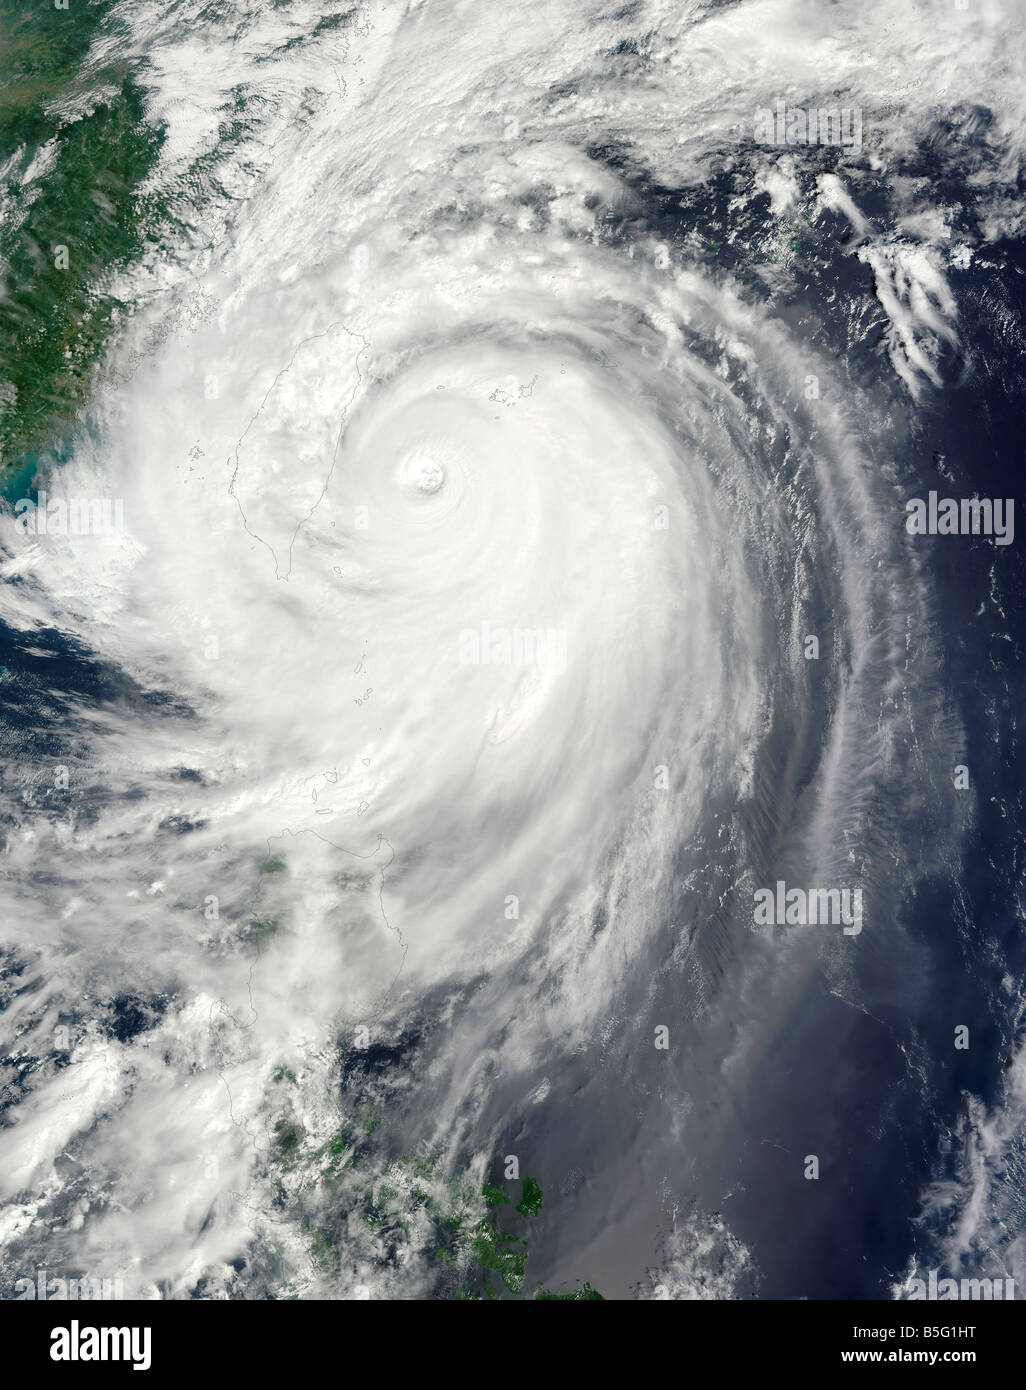 September 28, 2008 - Typhoon Jangmi at 10:20 a.m., local time, a few hours before the typhoon came ashore. - Stock Image